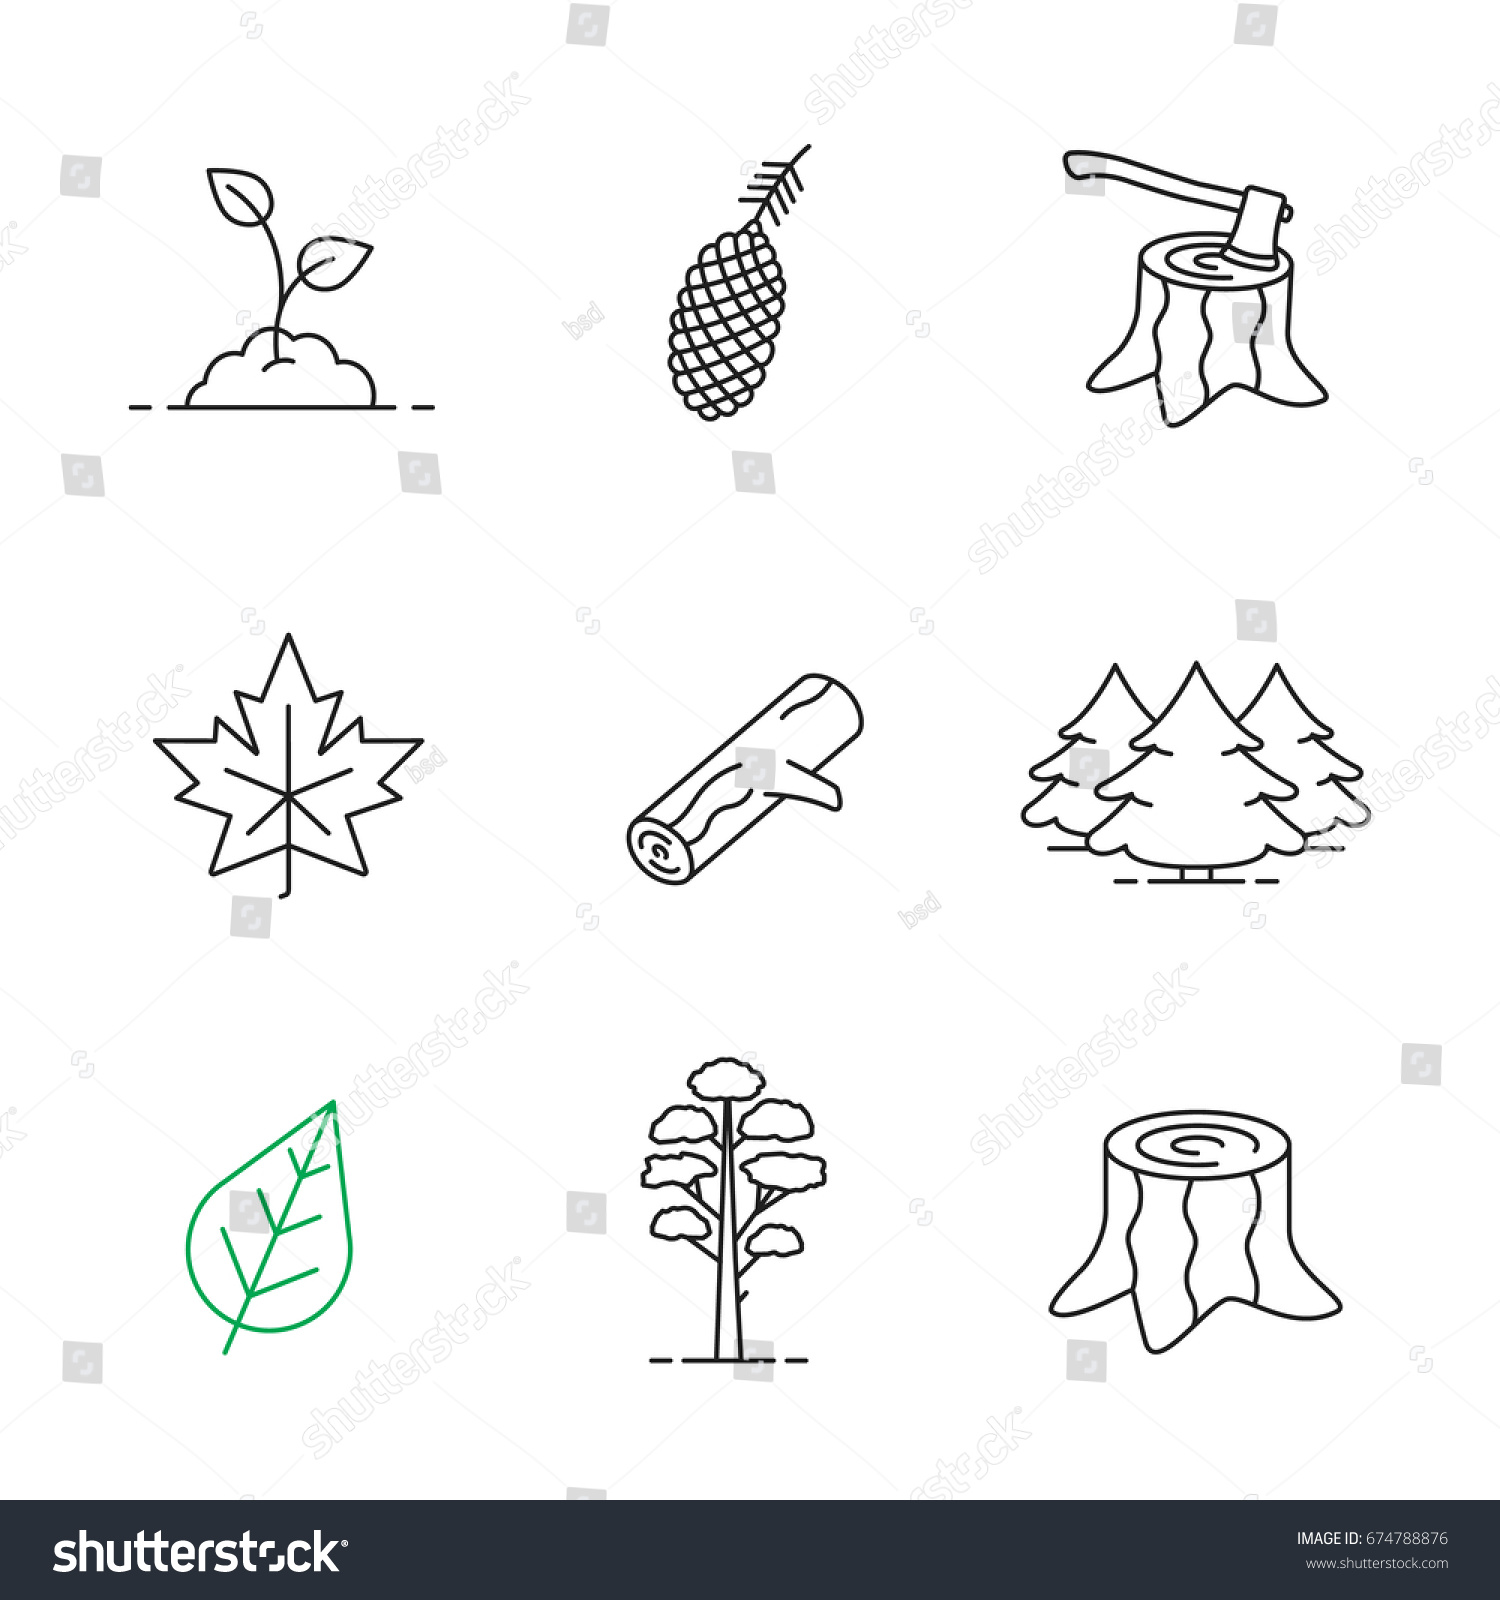 Forestry Linear Icons Set Pine Cone Stock Vector 2018 674788876